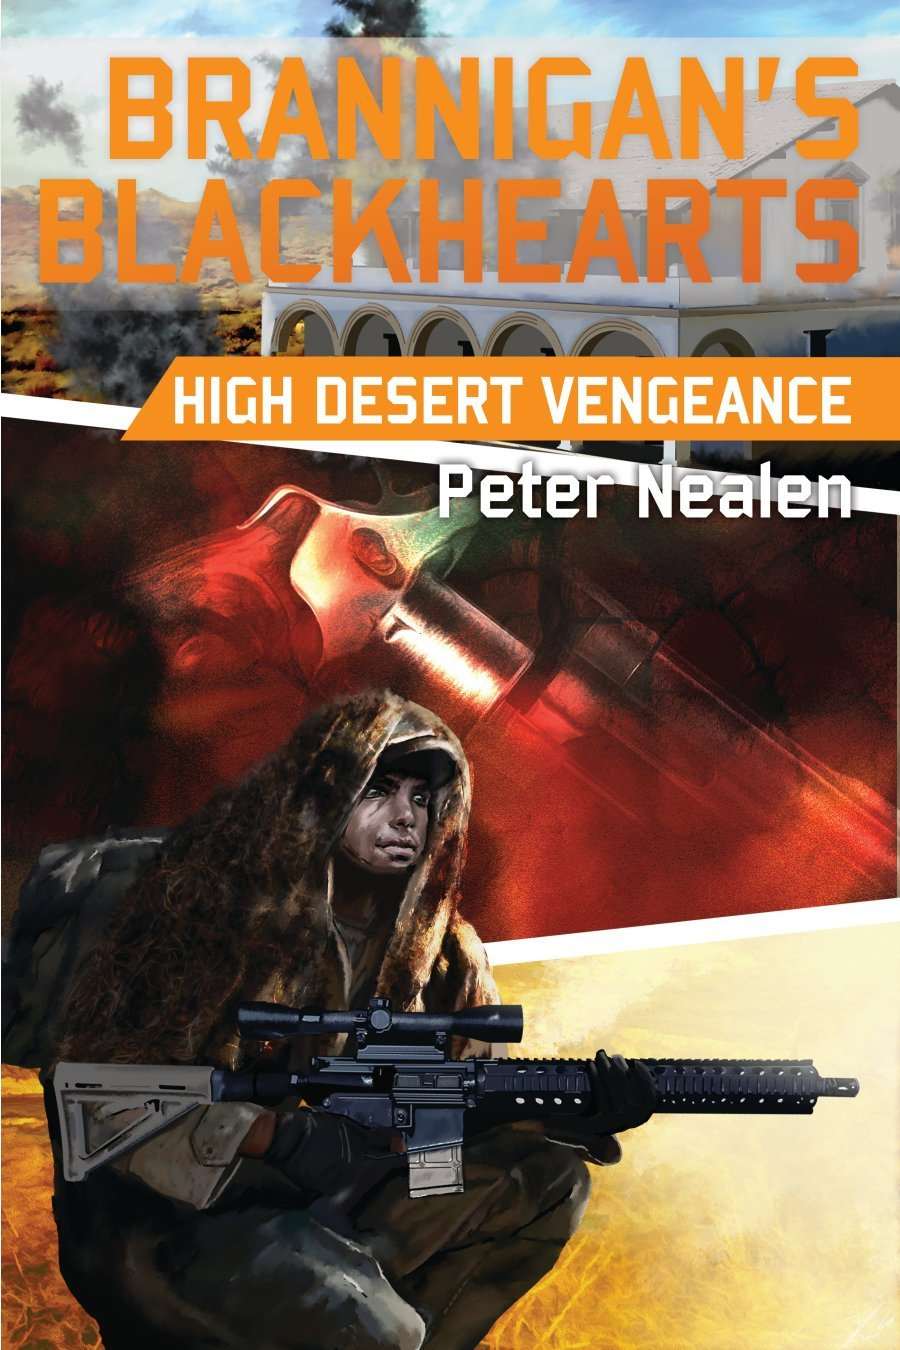 High Desert Vengeance by Peter Nealen